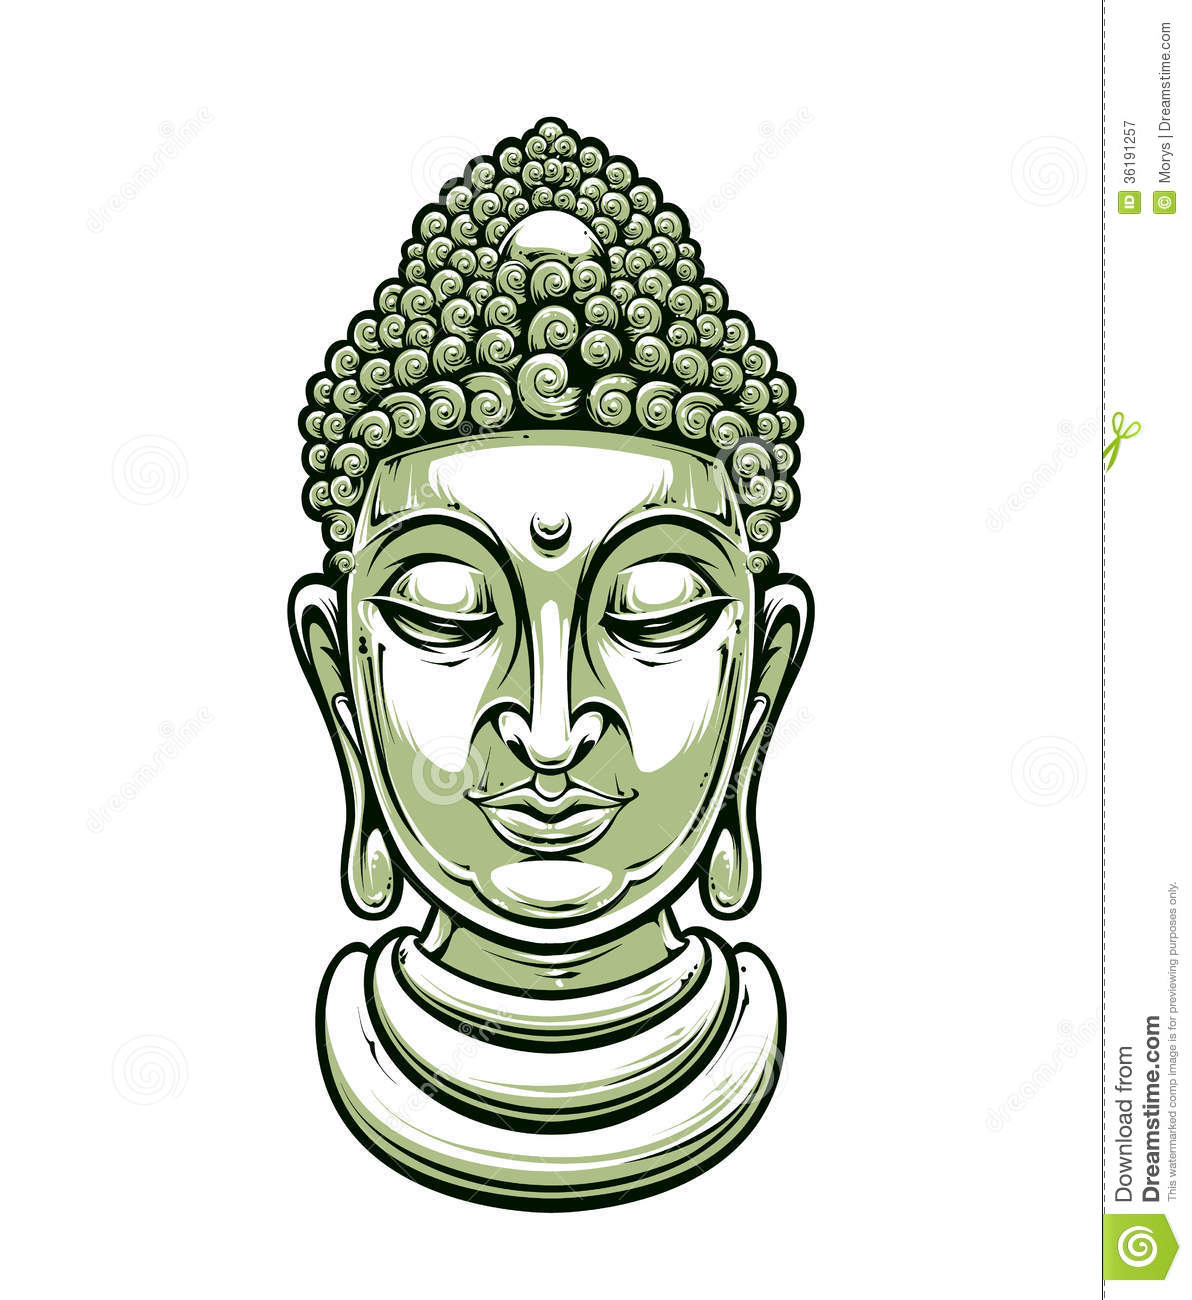 buddha illustration vector buddha head royalty free stock photography image 4957